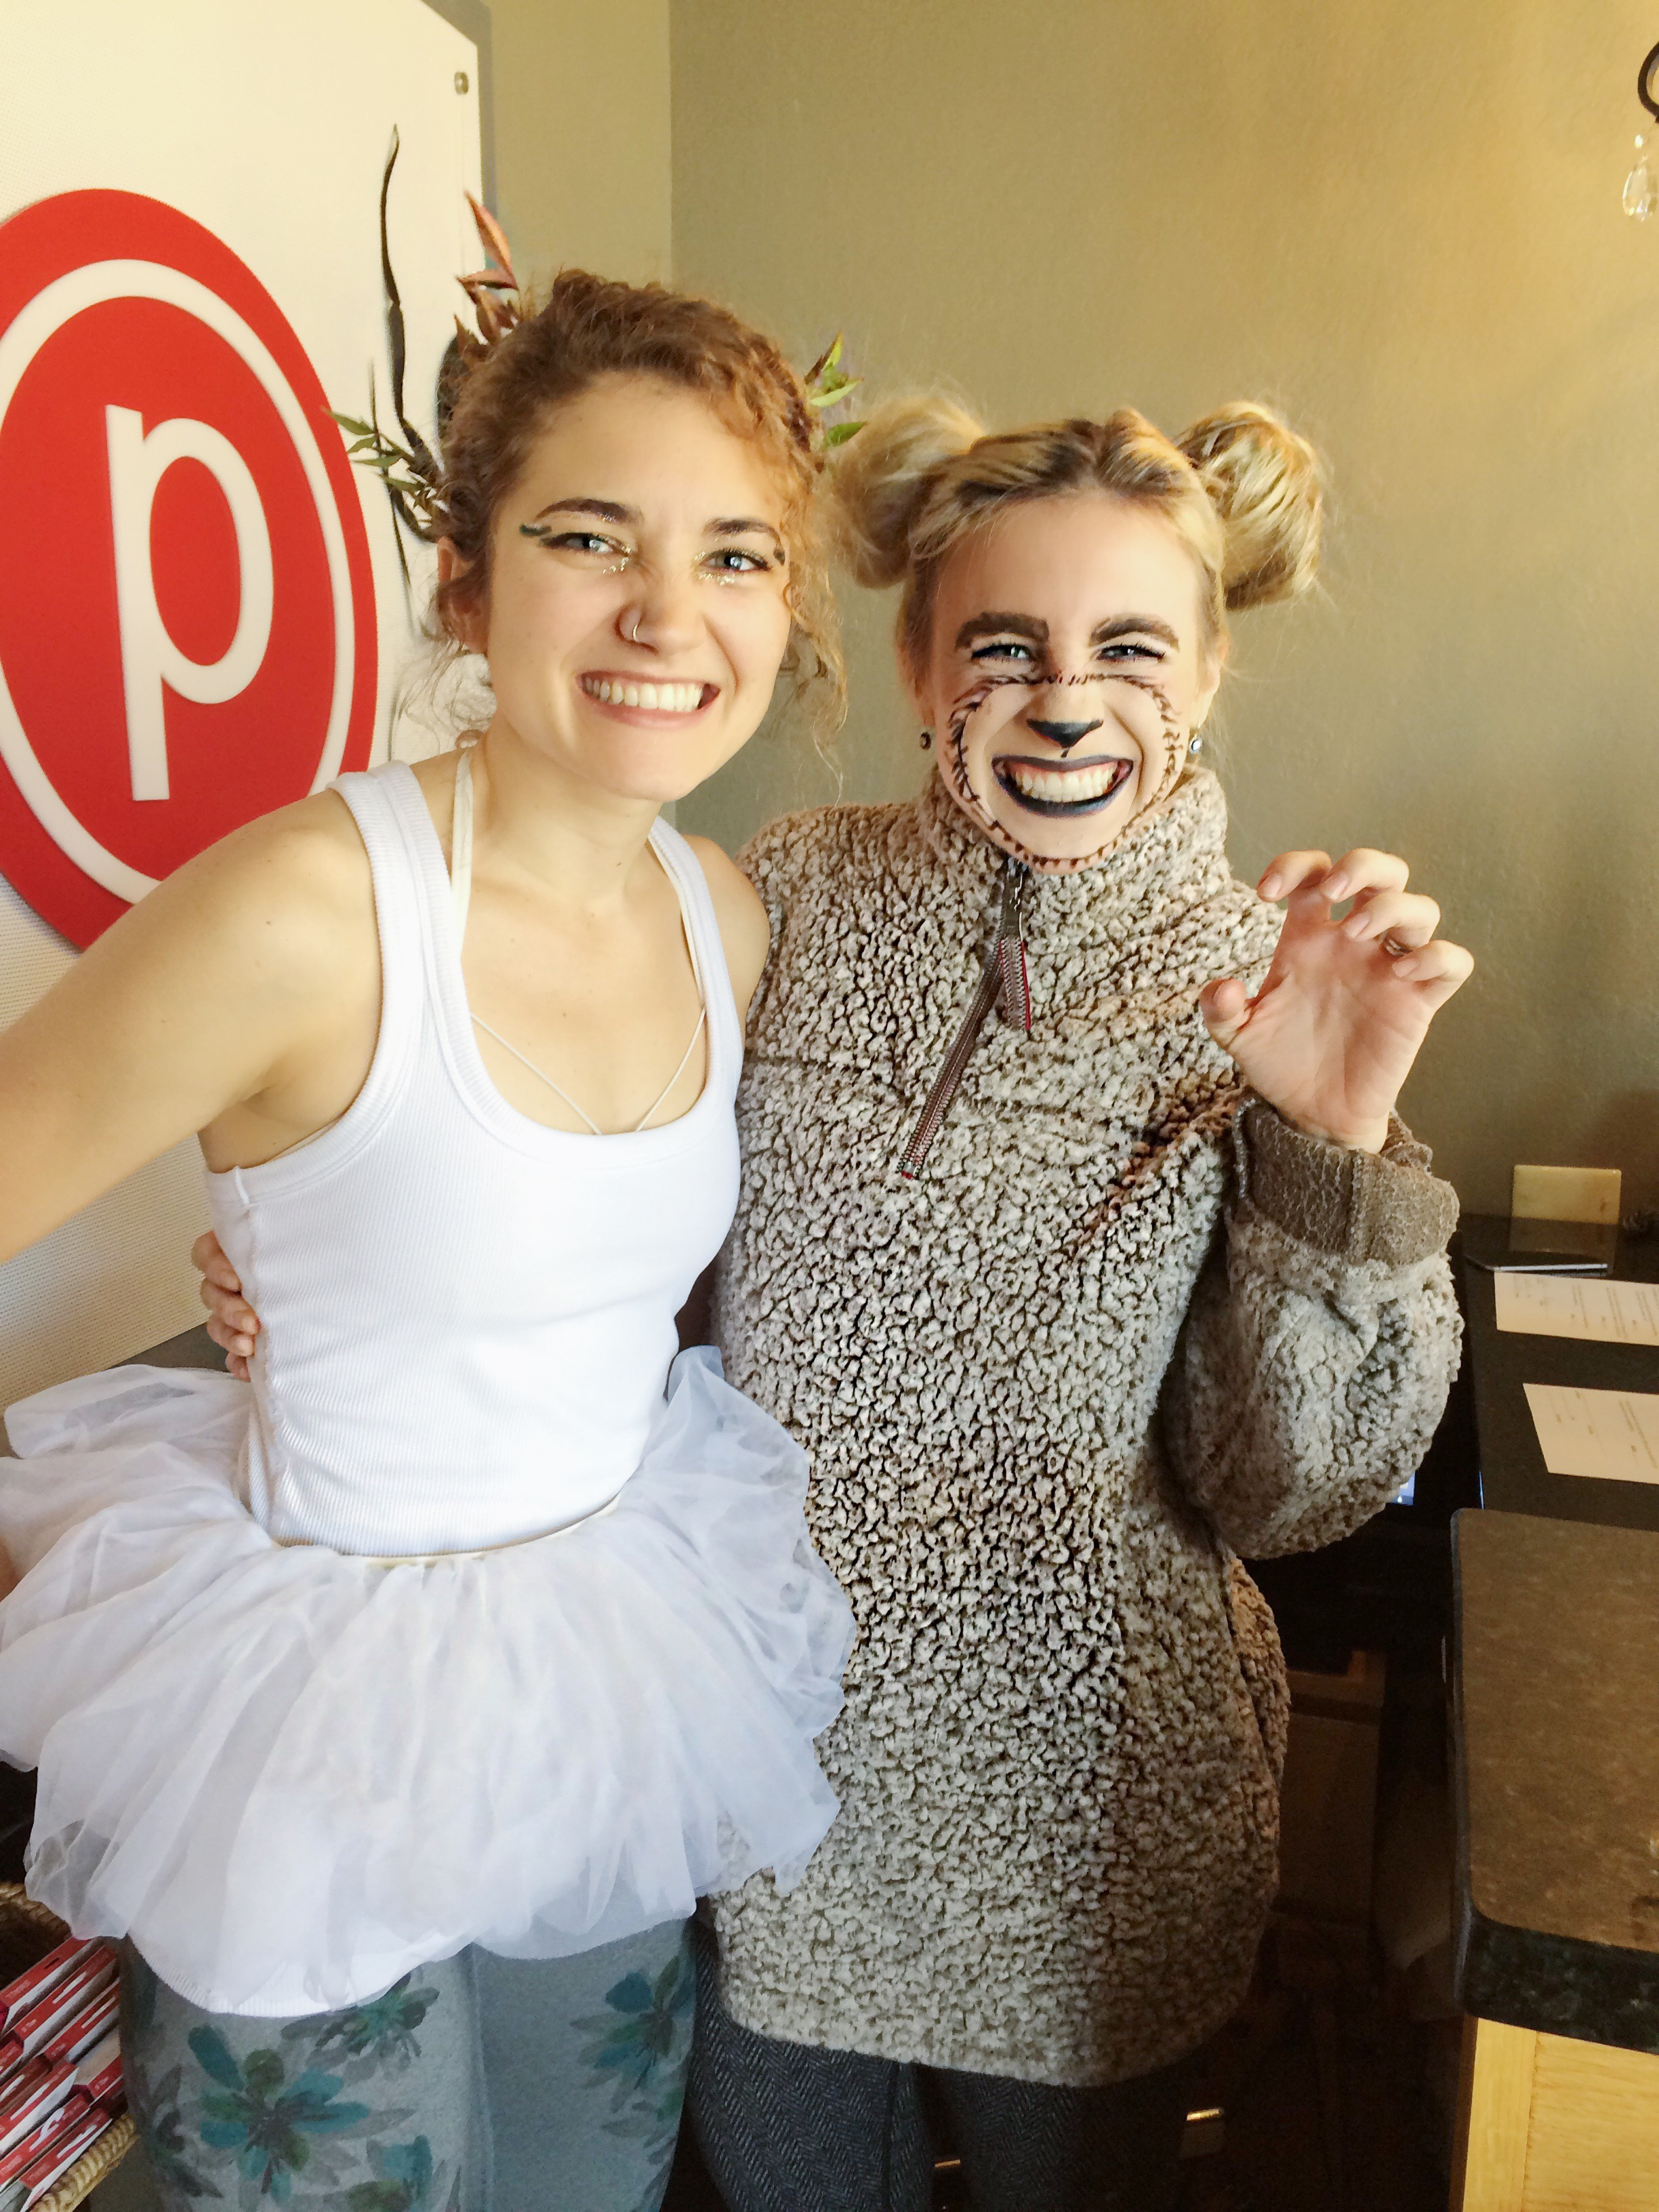 Fellow instructor Christina and me, also at Halloween last year!